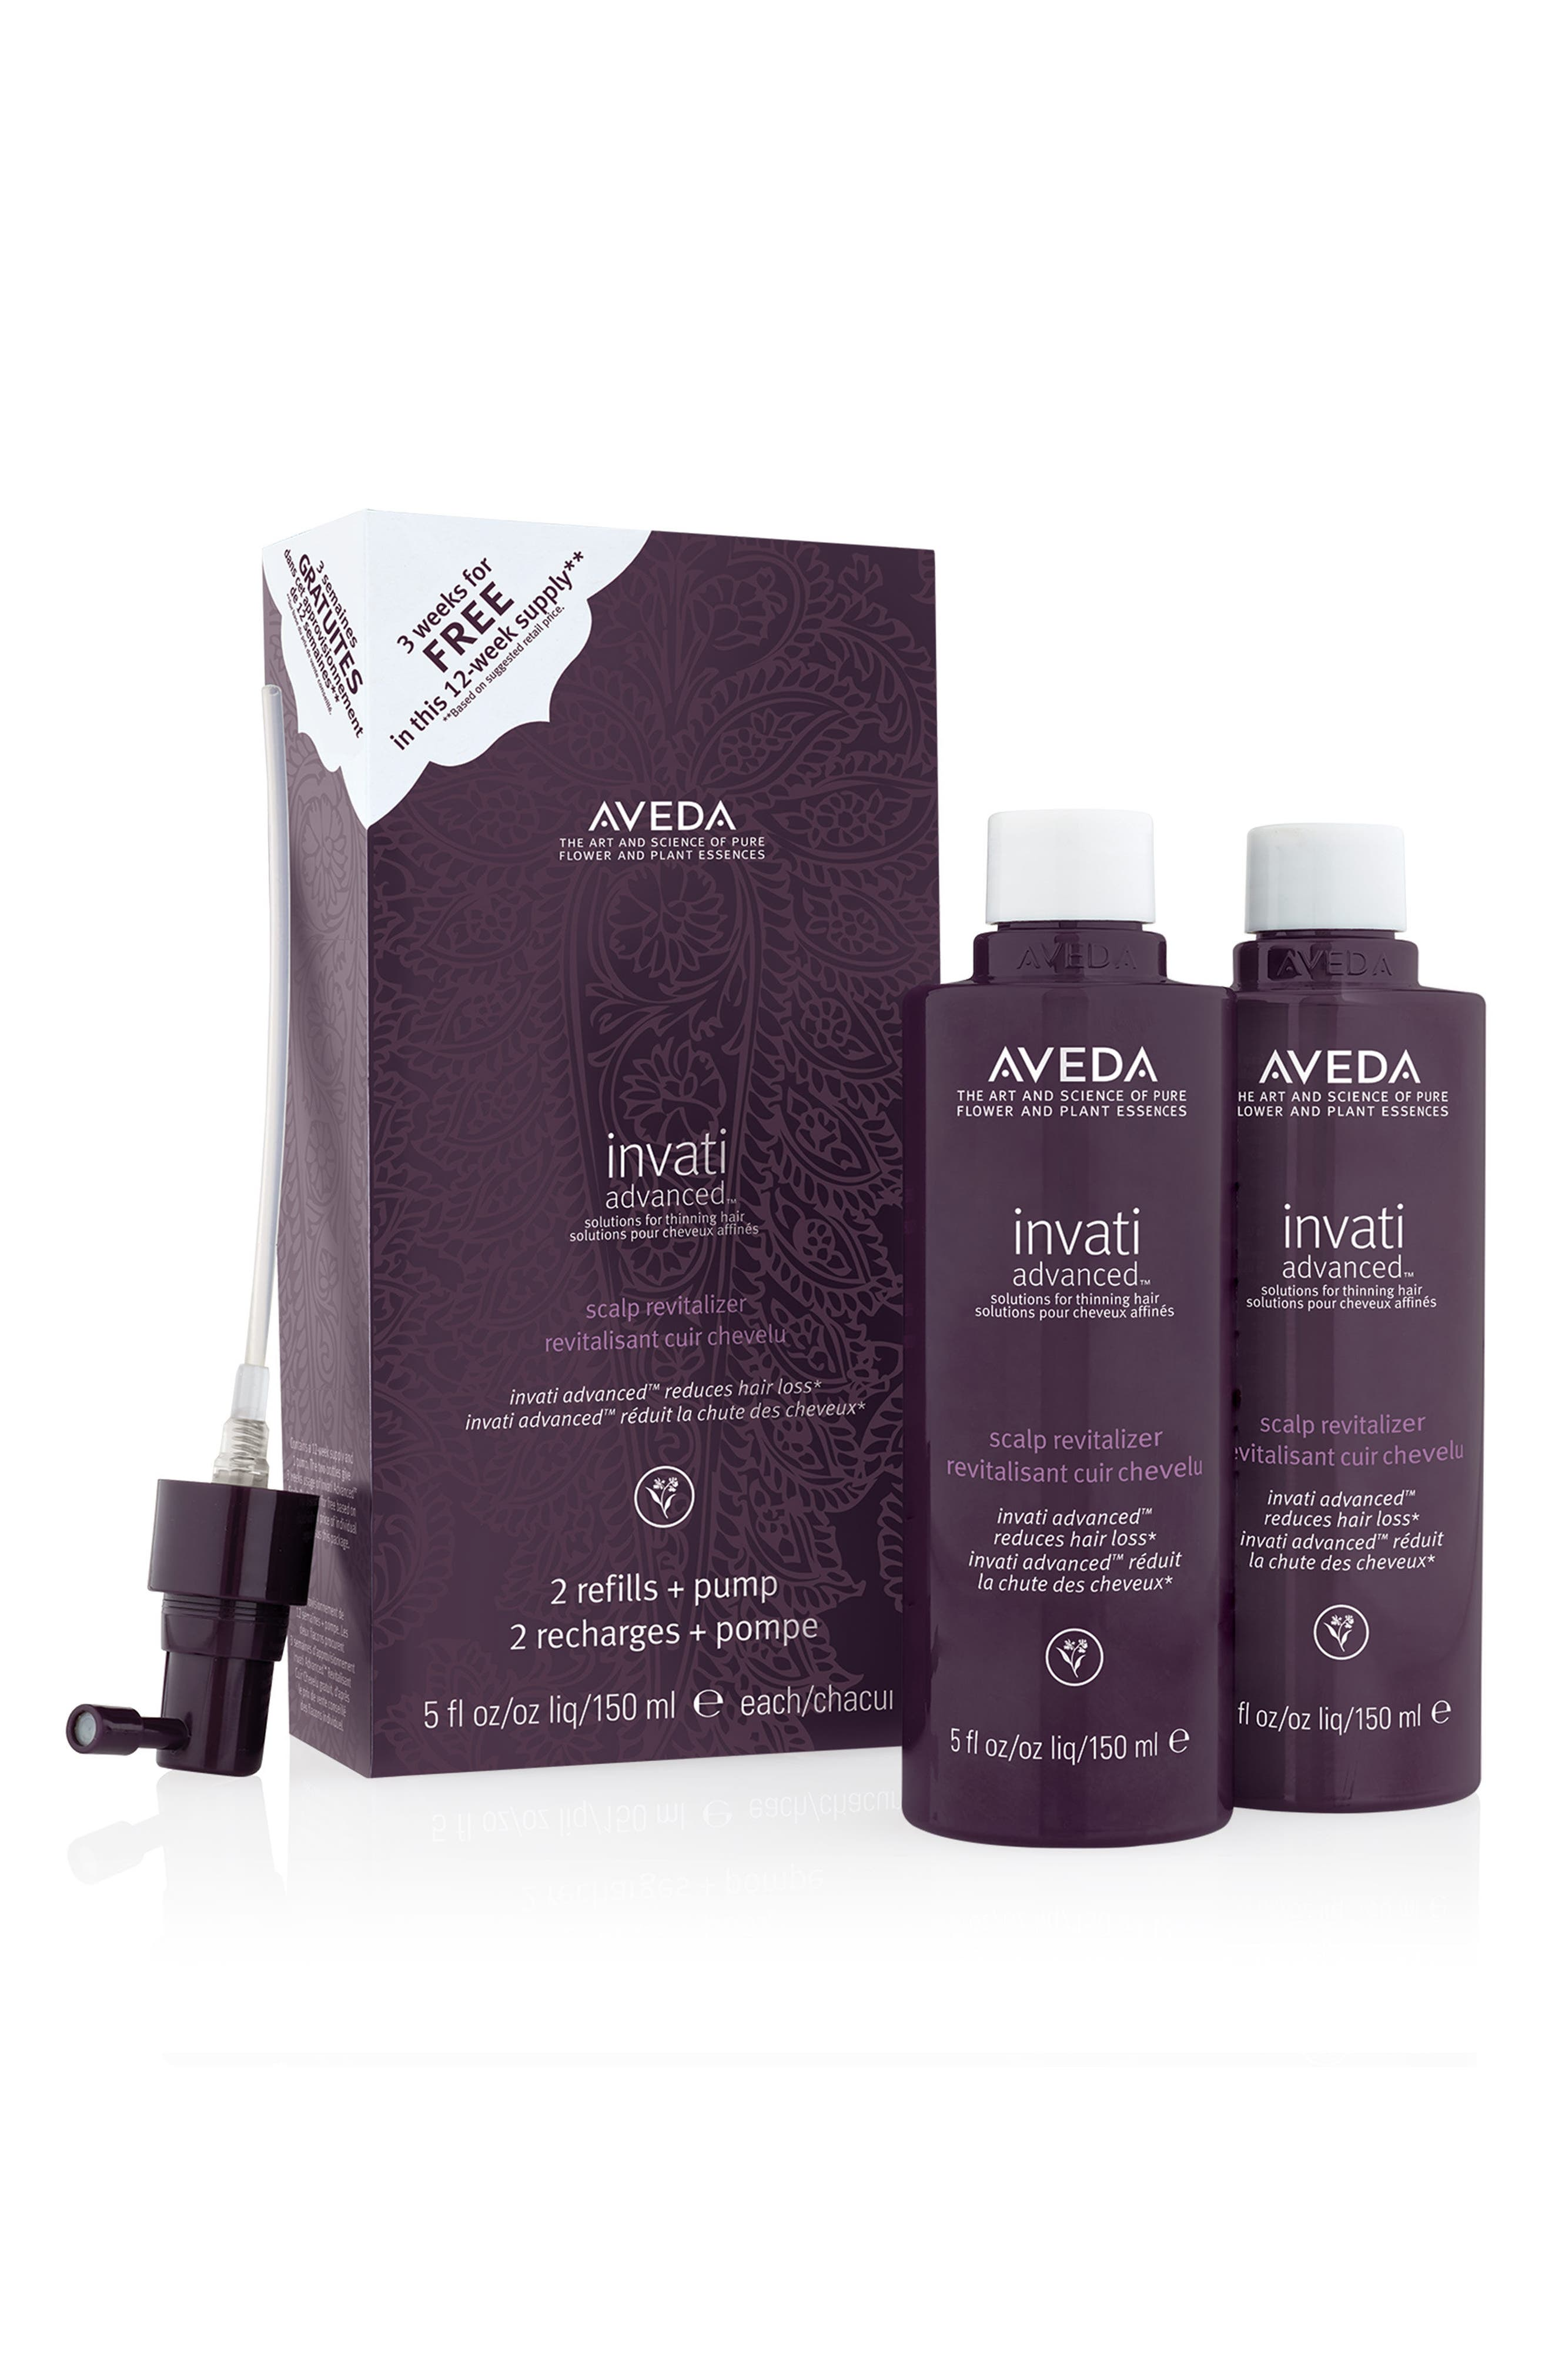 Aveda invati™ Advanced Scalp Revitalizer Kit